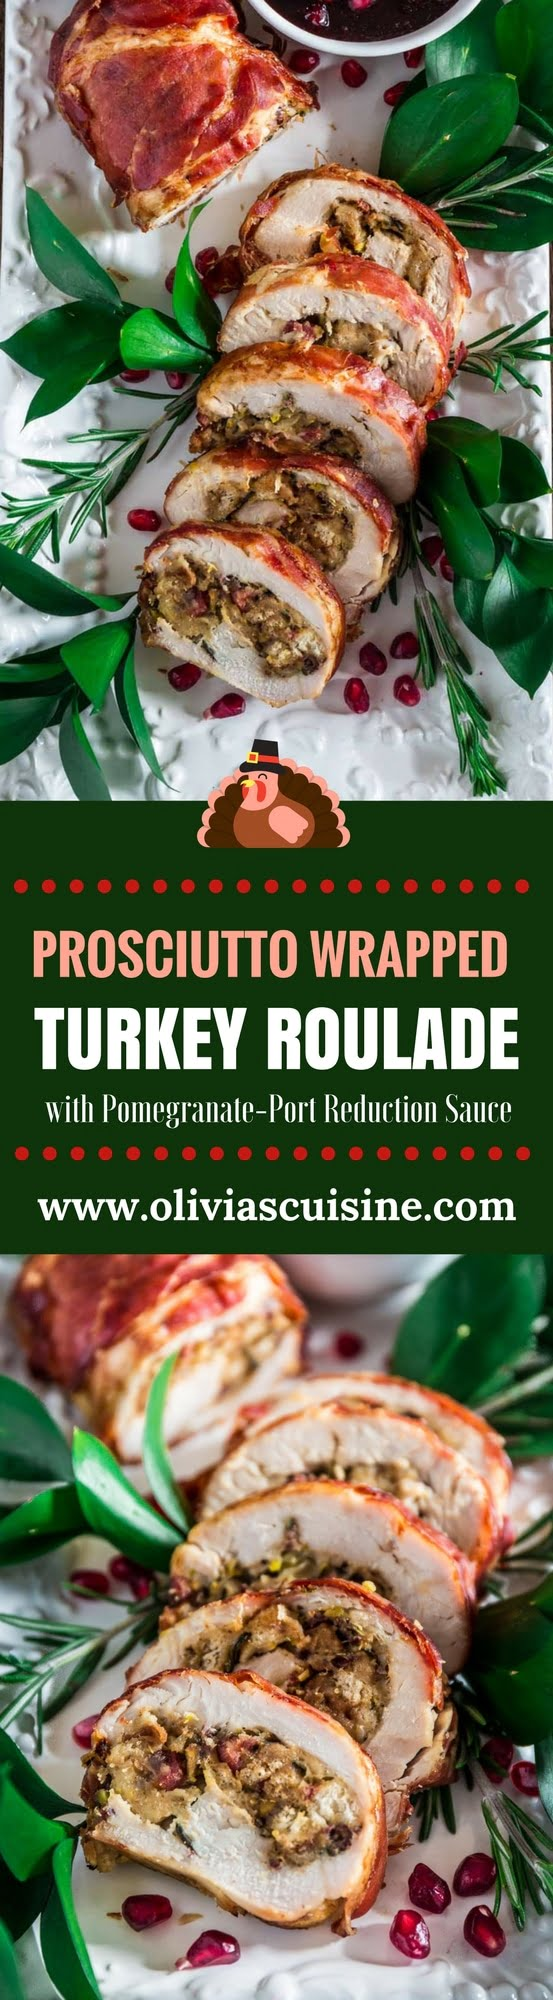 Prosciutto Wrapped Turkey Roulade with Pomegranate-Port Reduction Sauce | www.oliviascuisine.com | No time to roast a whole turkey? Knock the socks off your guests with this simple and quick to assemble turkey roulade. Moist, stuffed with pancetta, pistachio and cranberries, wrapped in Prosciutto di Parma and served with a lip-smacking pomegranate port reduction sauce. One bite and the holidays will never be the same again!